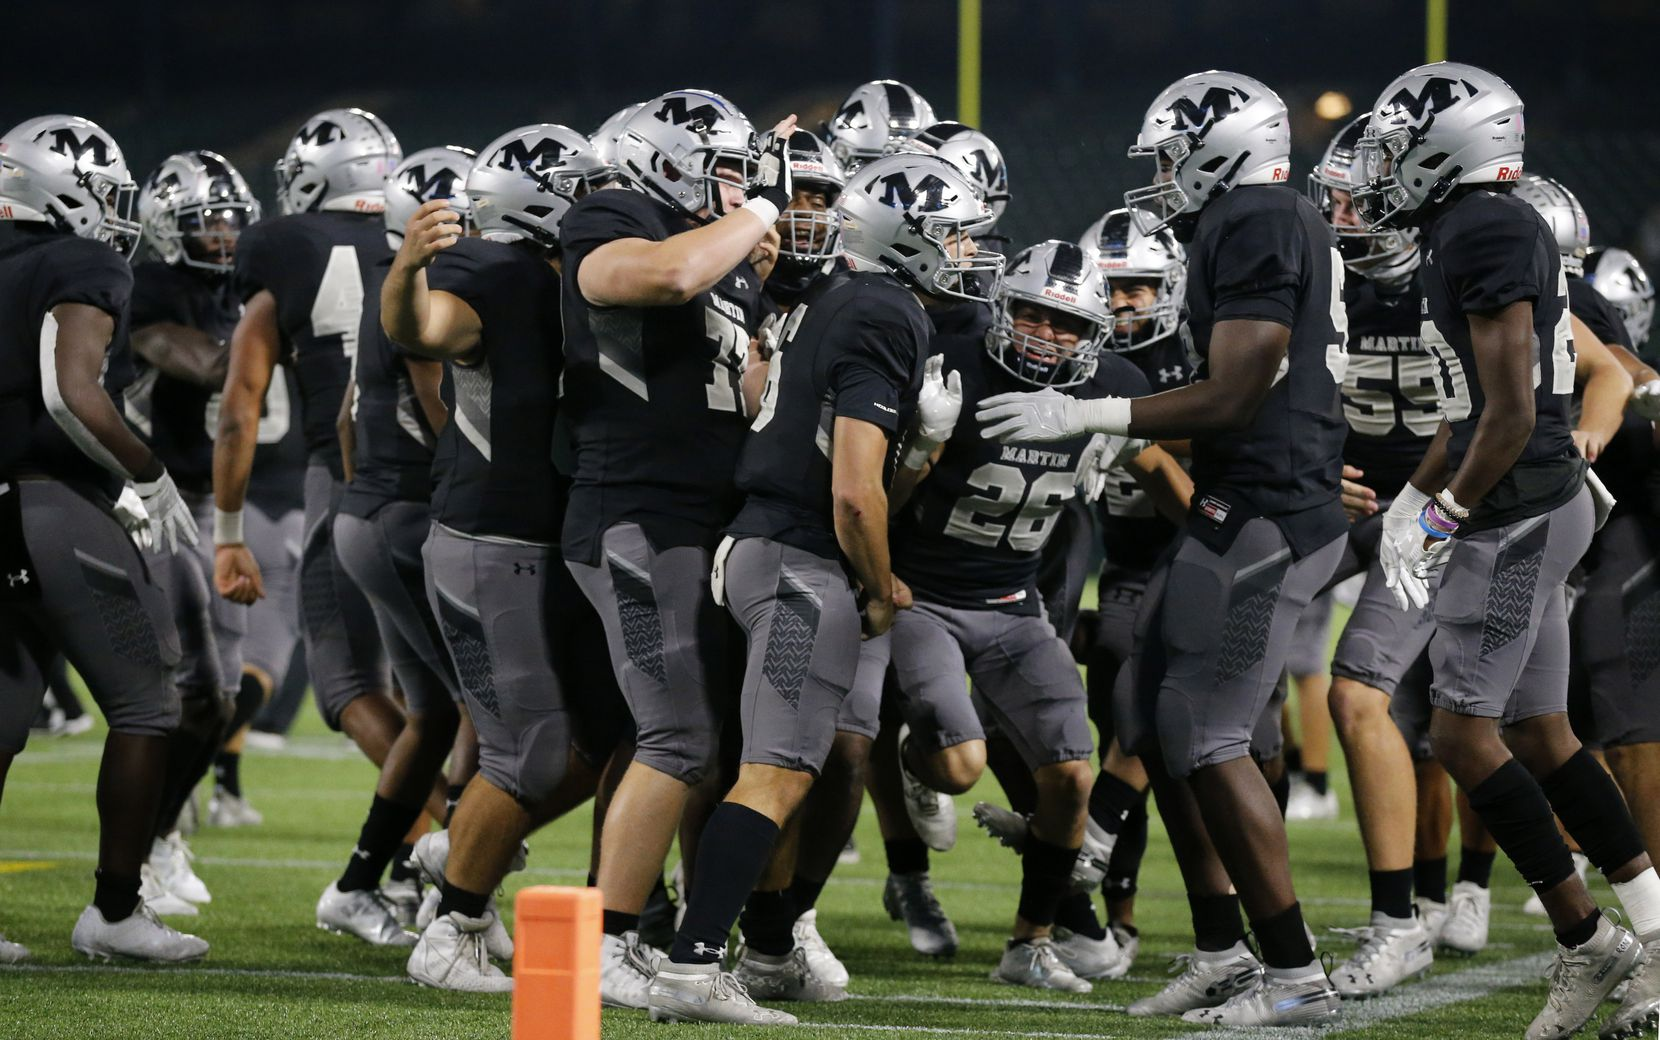 Arlington Martin quarterback Zach Mundell (center) is congratulated by teammates after scoring the winning touchdown in overtime against Arlington Lamar at Globe Life Park in Arlington, Friday, October 30, 2020. Martin defeated Lamar in overtime, 38-31. (Tom Fox/The Dallas Morning News)